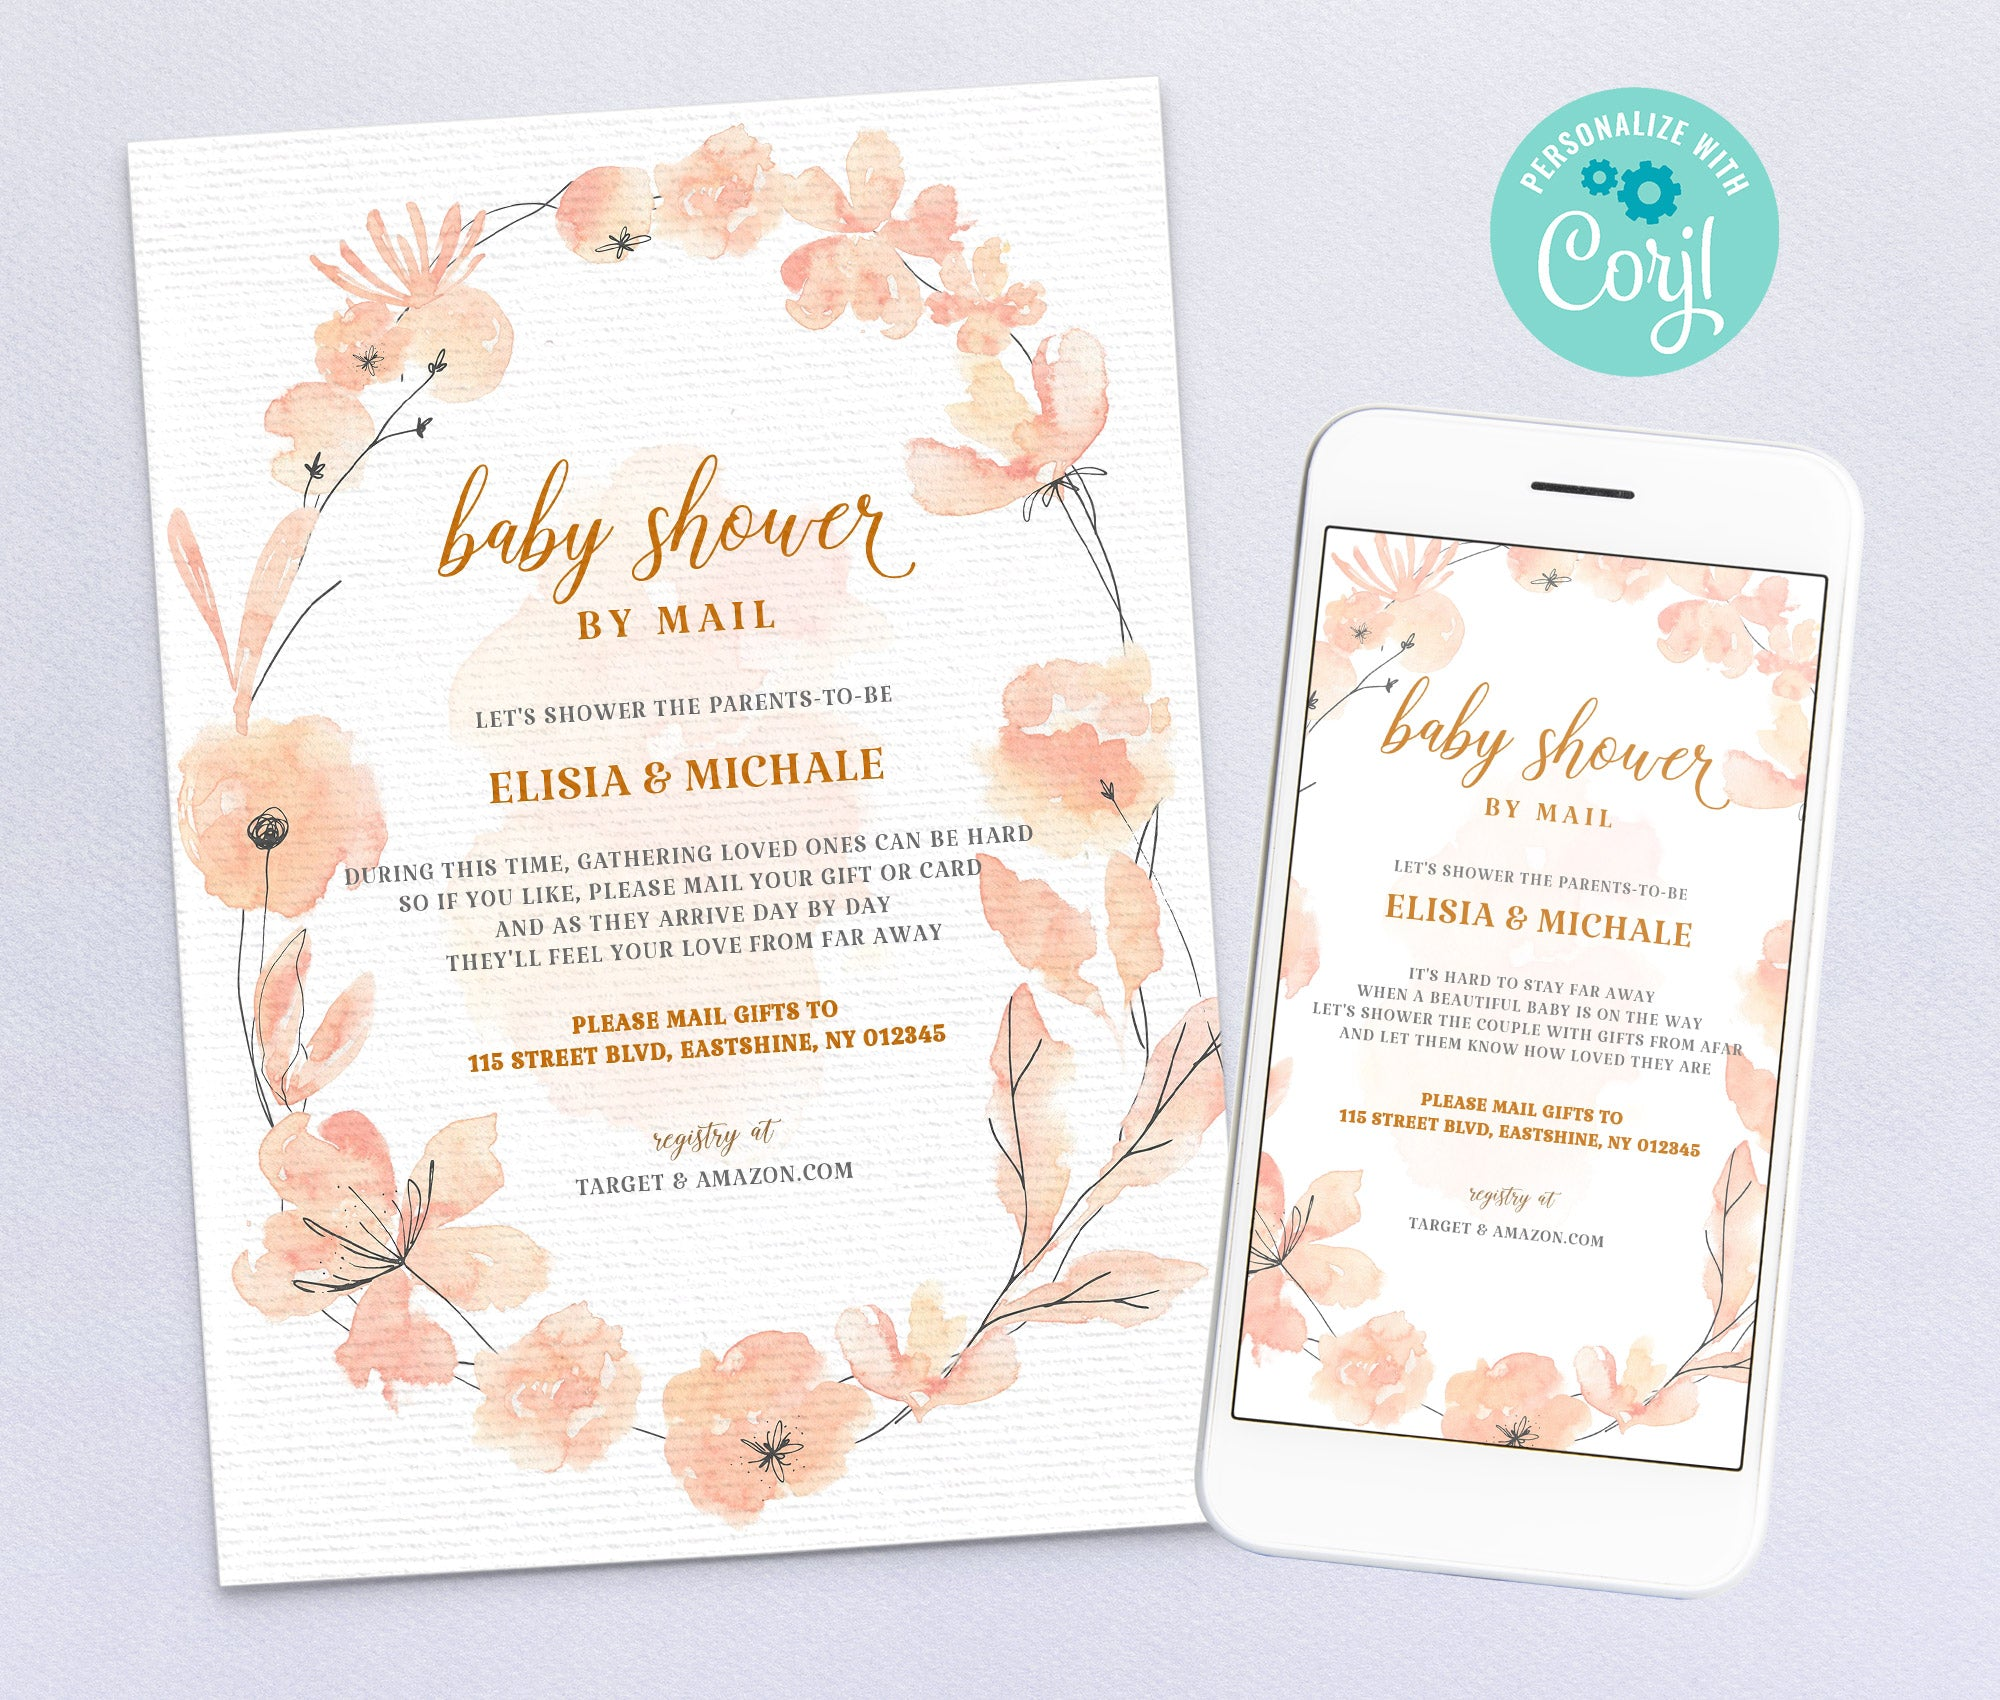 Baby Shower by Mail Invitation 3